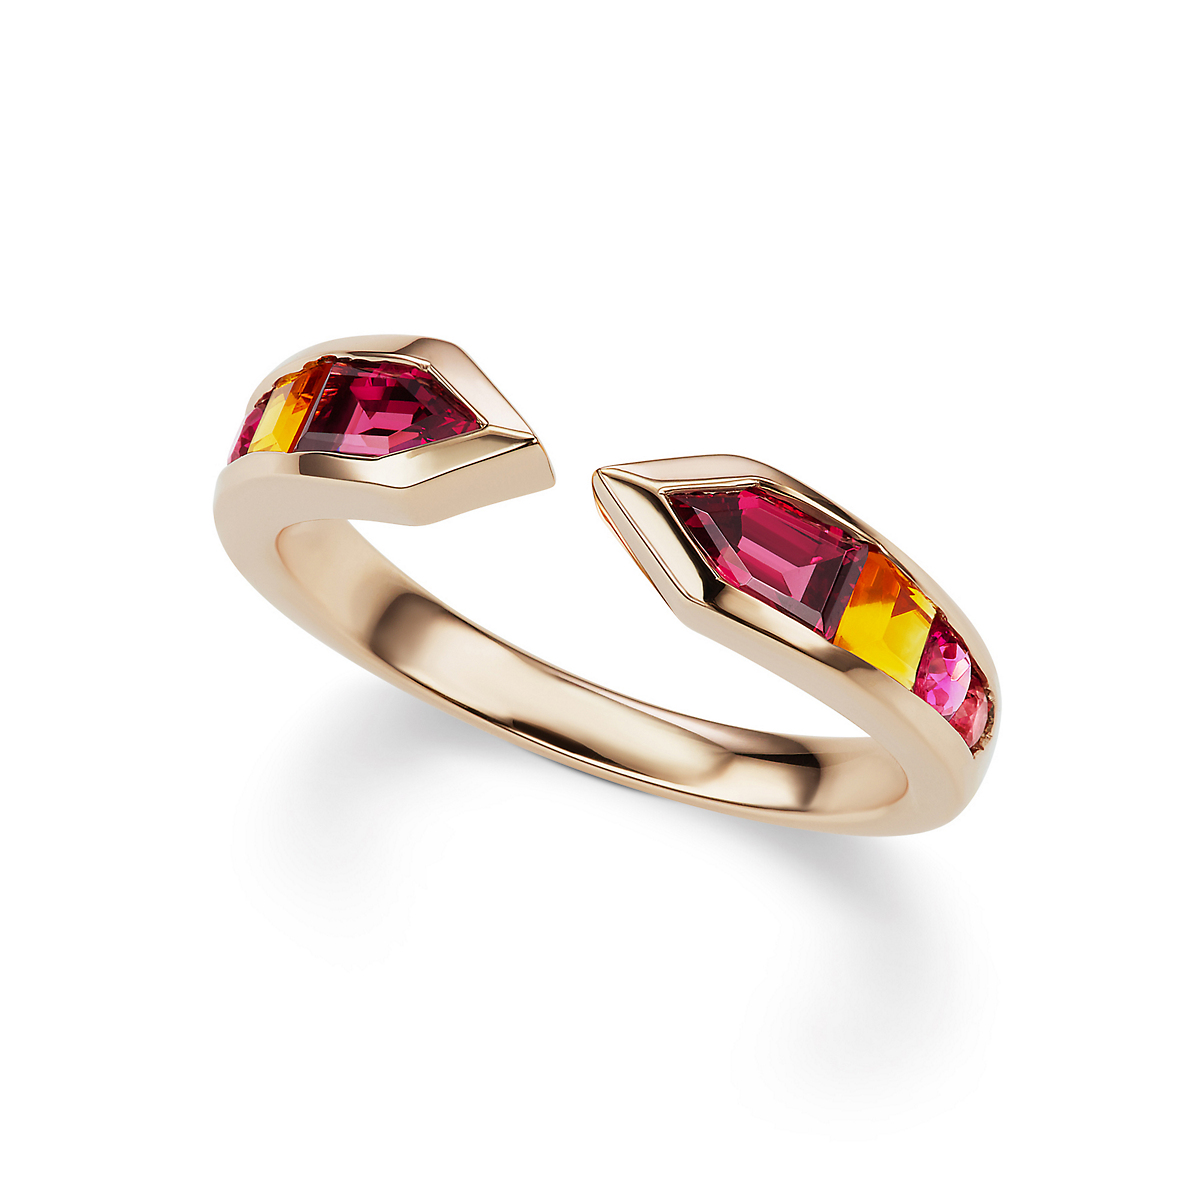 Jane Taylor Garnet, Citrine, Rubellite & Tourmaline Cirque Meeting Arrows Ring